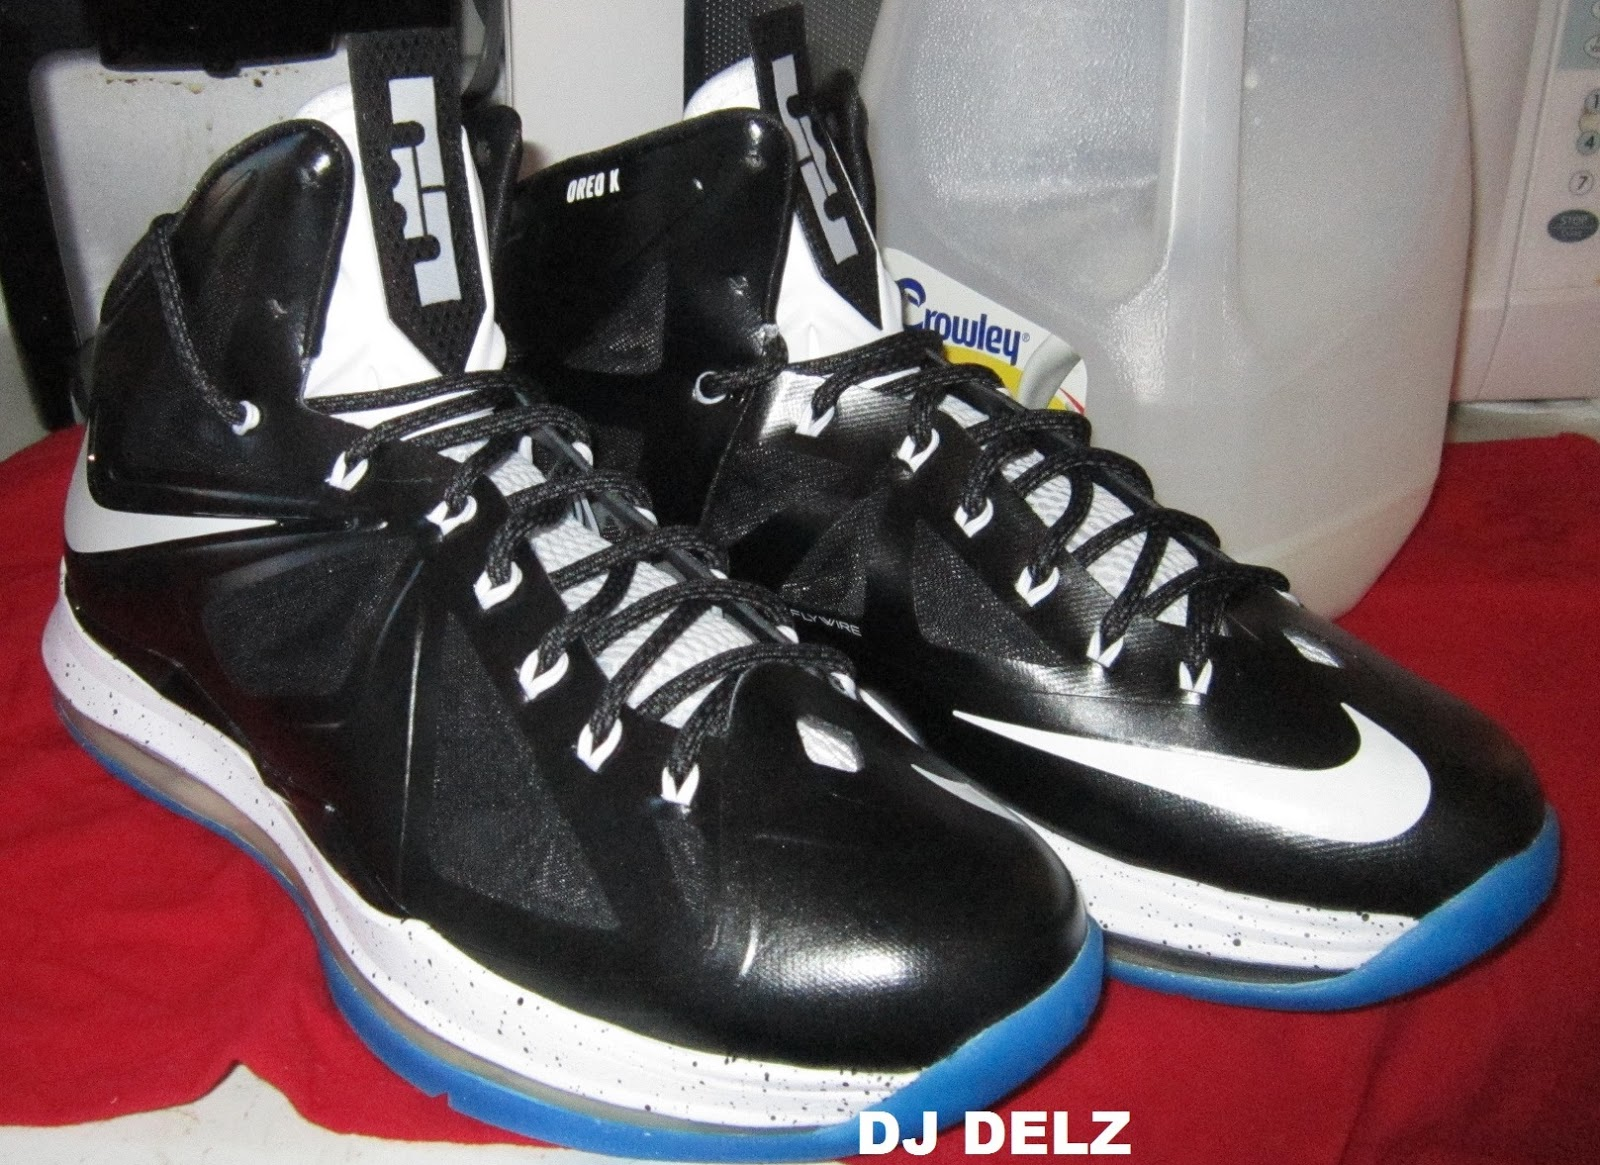 timeless design 975a9 c9c53 Here is some detailed images from Dj Delz s newest creation, the 2013 Nike  Lebron 10 Oreo X Sneaker Designed By Dj Delz , got love that blue outsole  taking ...